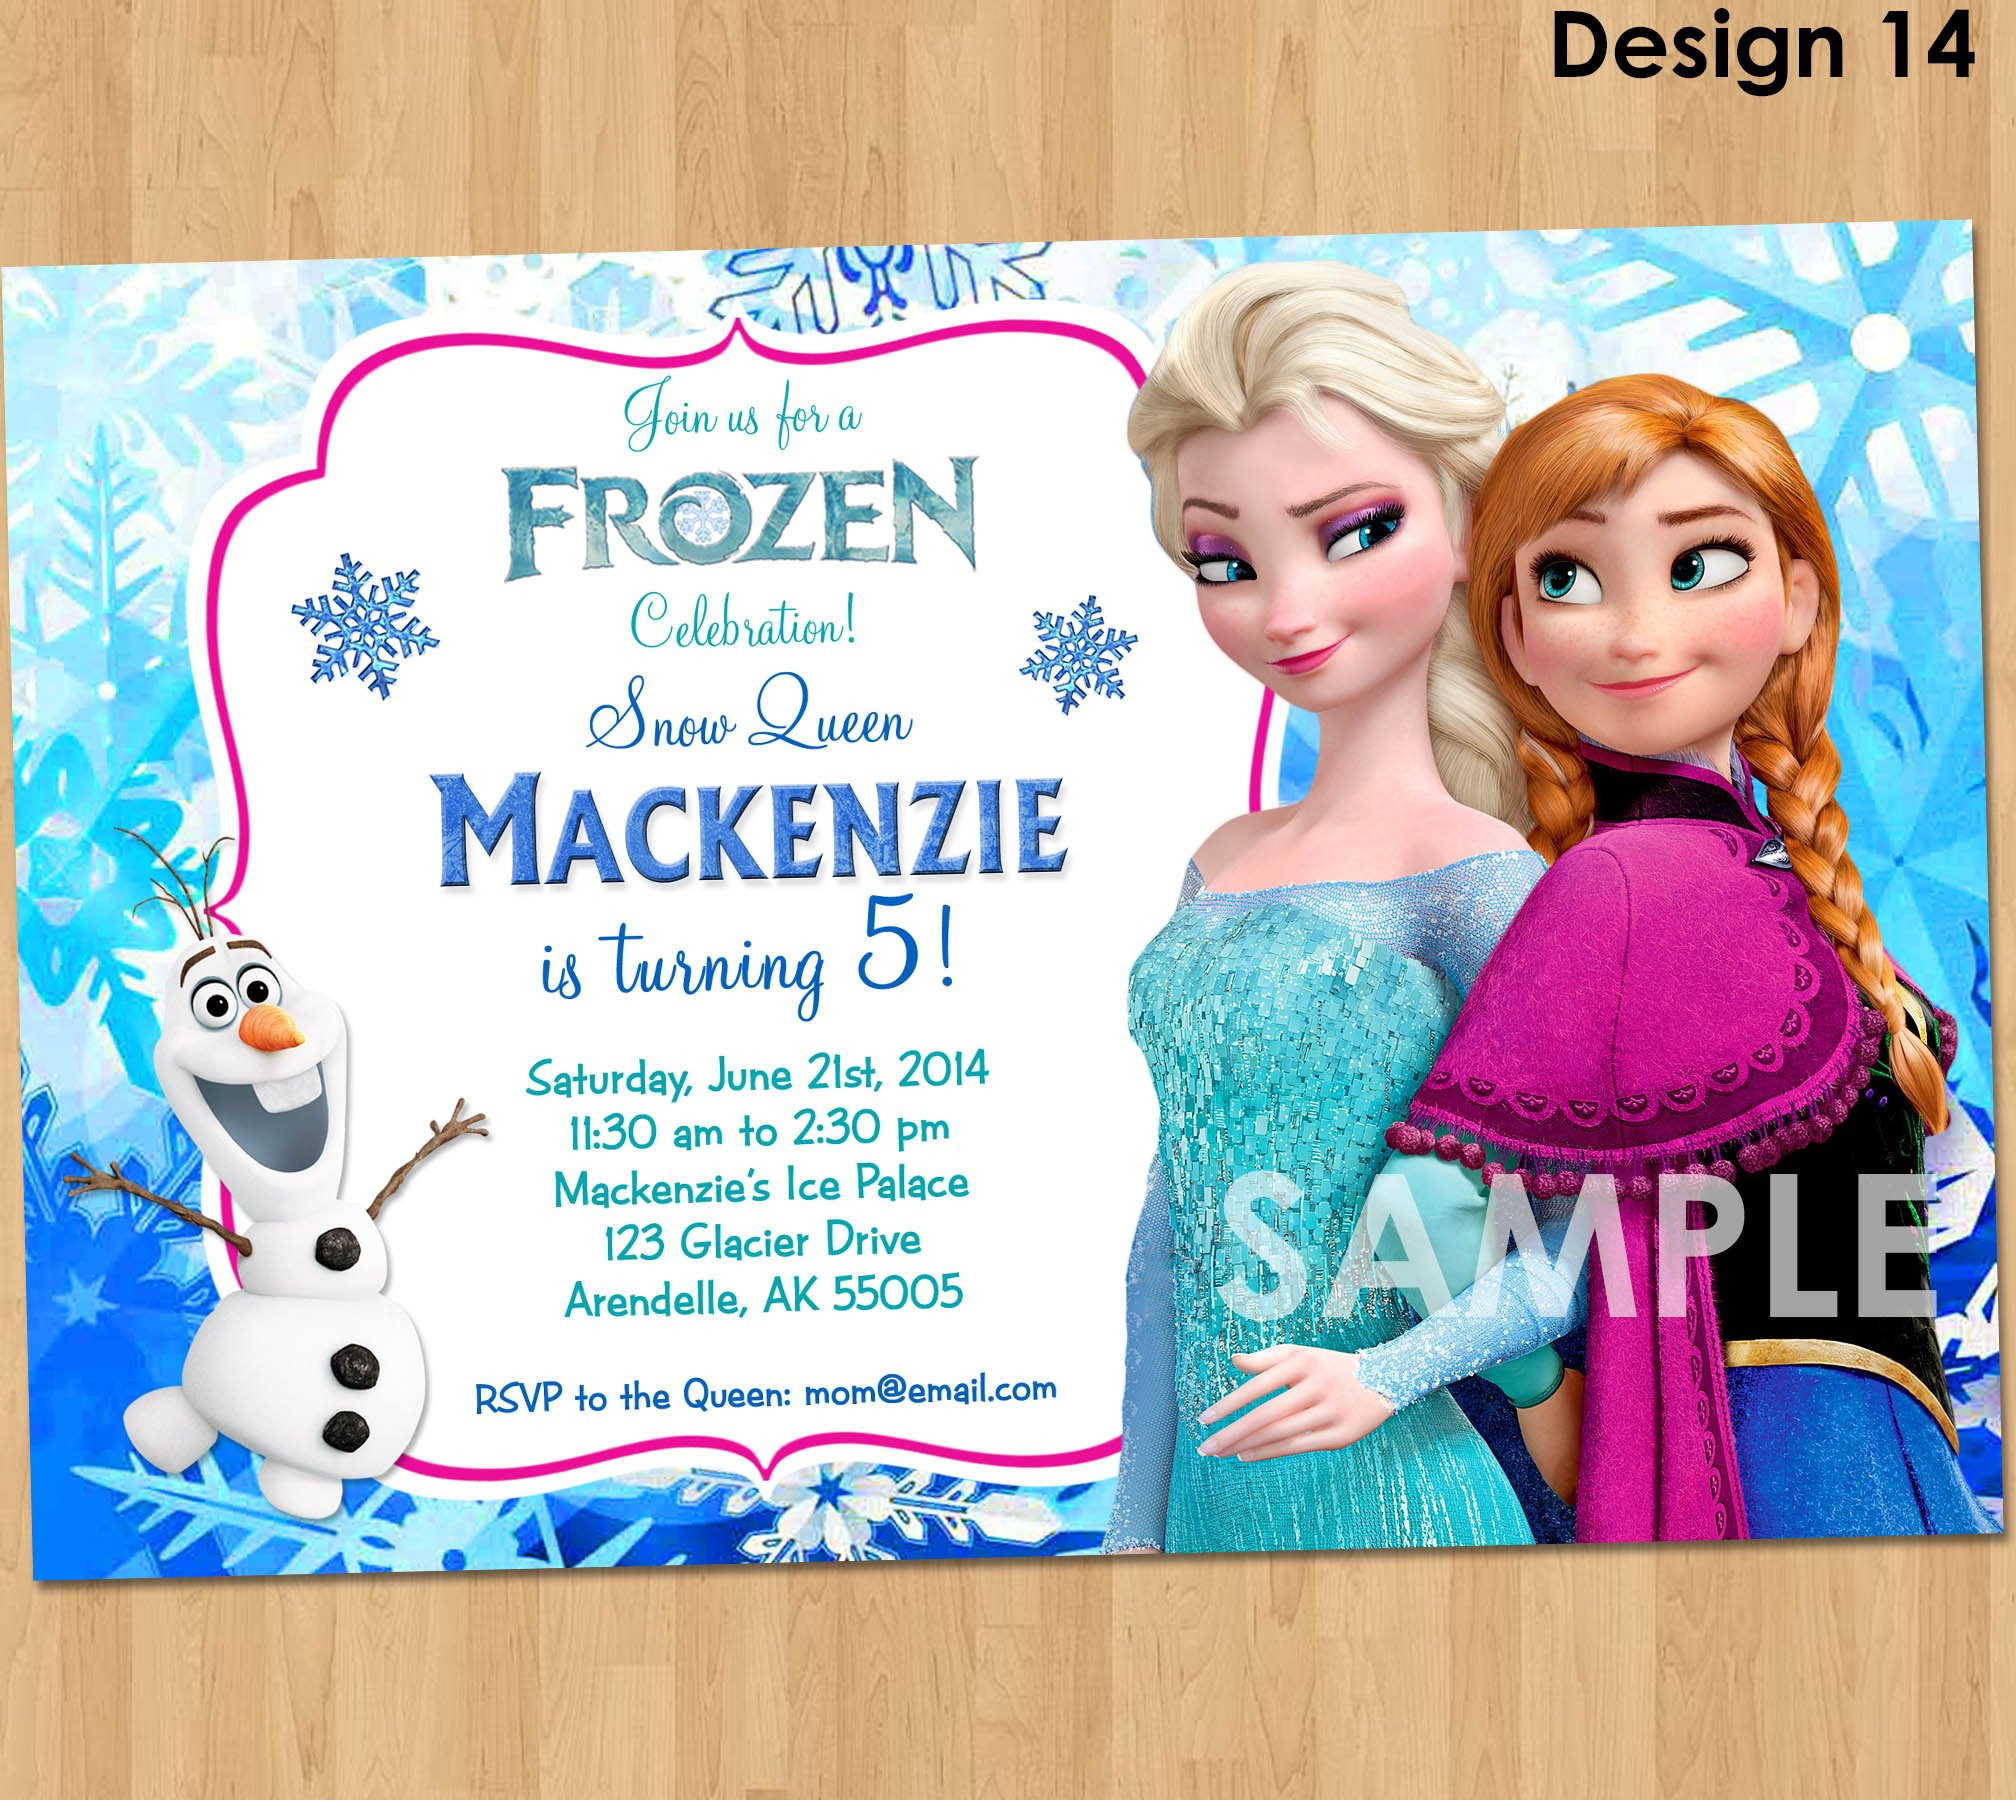 Frozen Printable Invitation Frozen Invitation Frozen Birthday Invitation Disney Frozen Party Invites Birthday Party Ideas Printable Elsa Anna Olaf